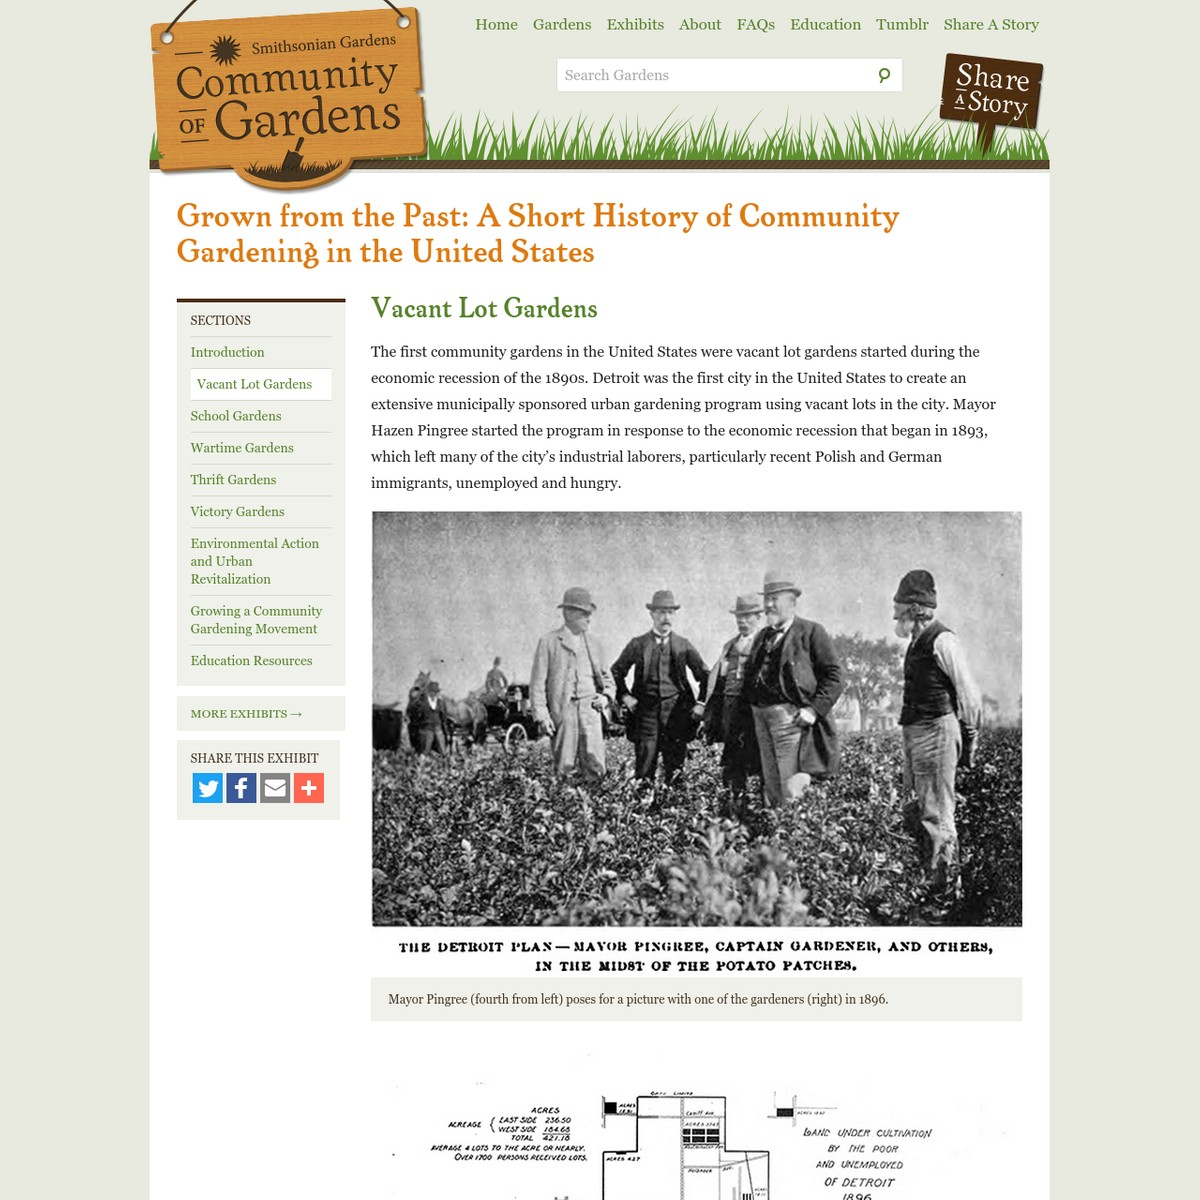 Welcome to Community of Gardens, a digital archive hosted by Smithsonian Gardens in partnership with our Archives of American Gardens and created by YOU. By contributing images, videos, and stories to this website, your participation will help others to better understand the meaning and value of gardens to American life - today and in the future.